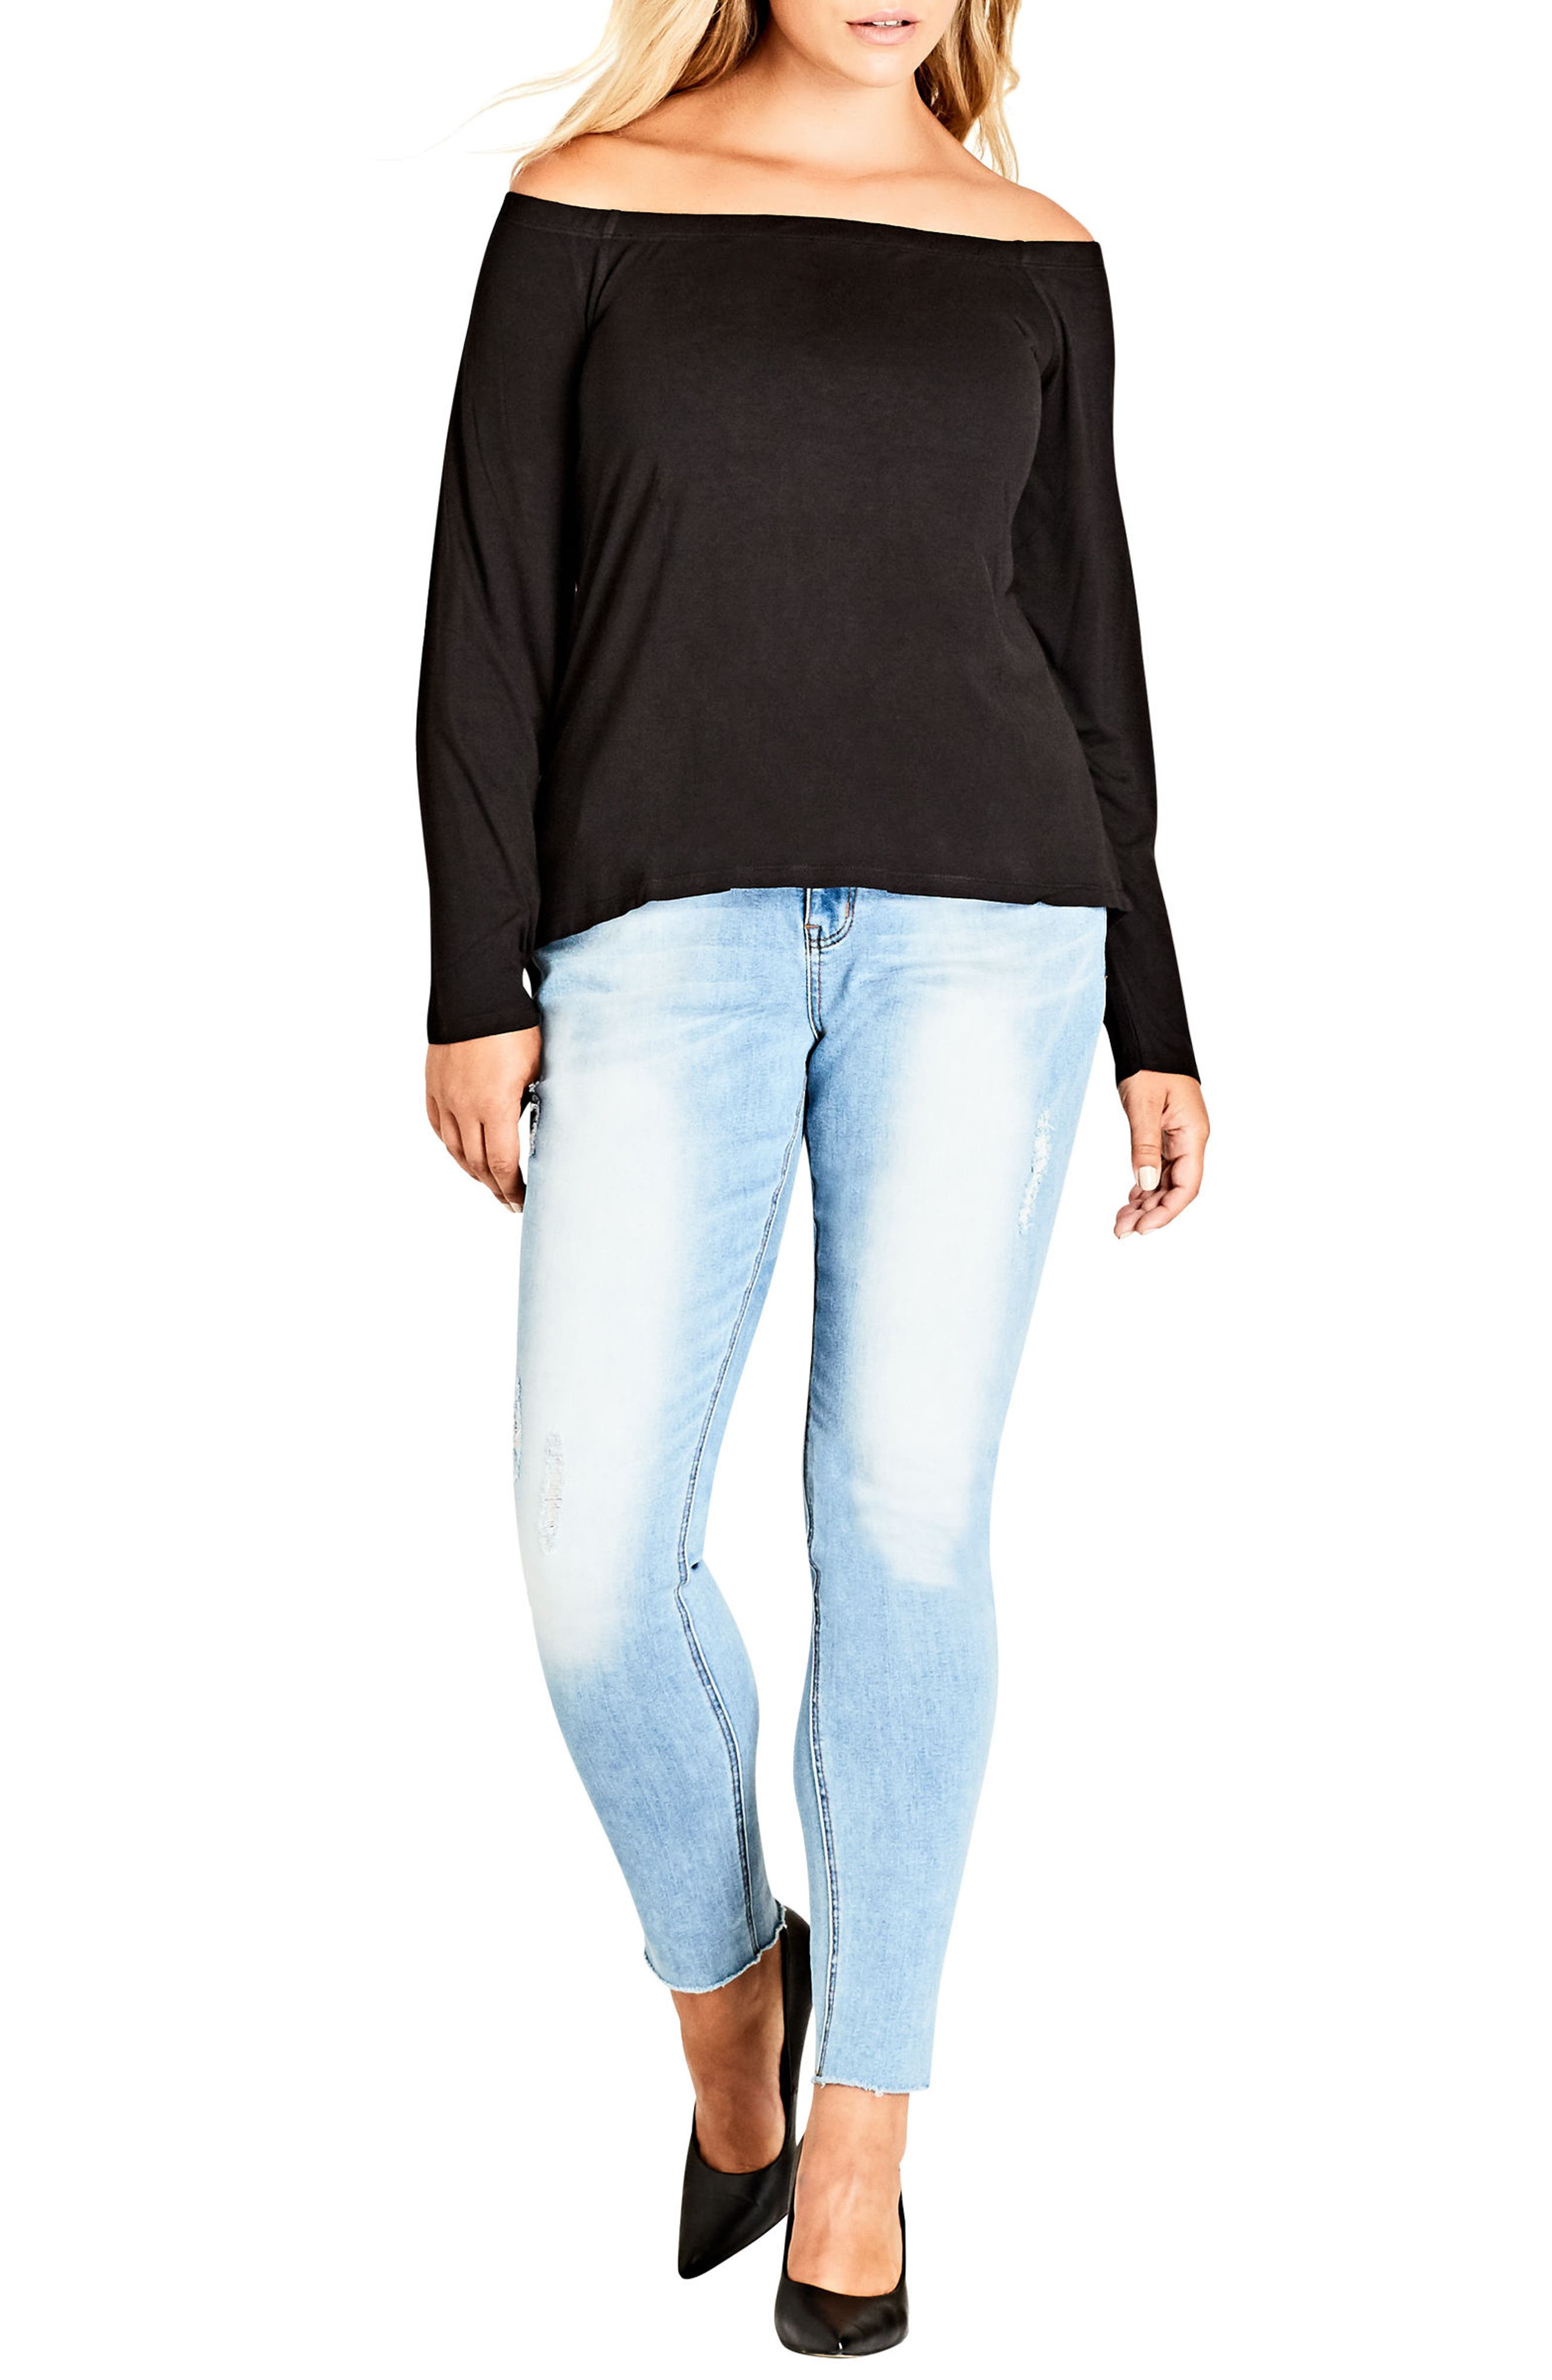 CITY CHIC Basic Off the Shoulder Top